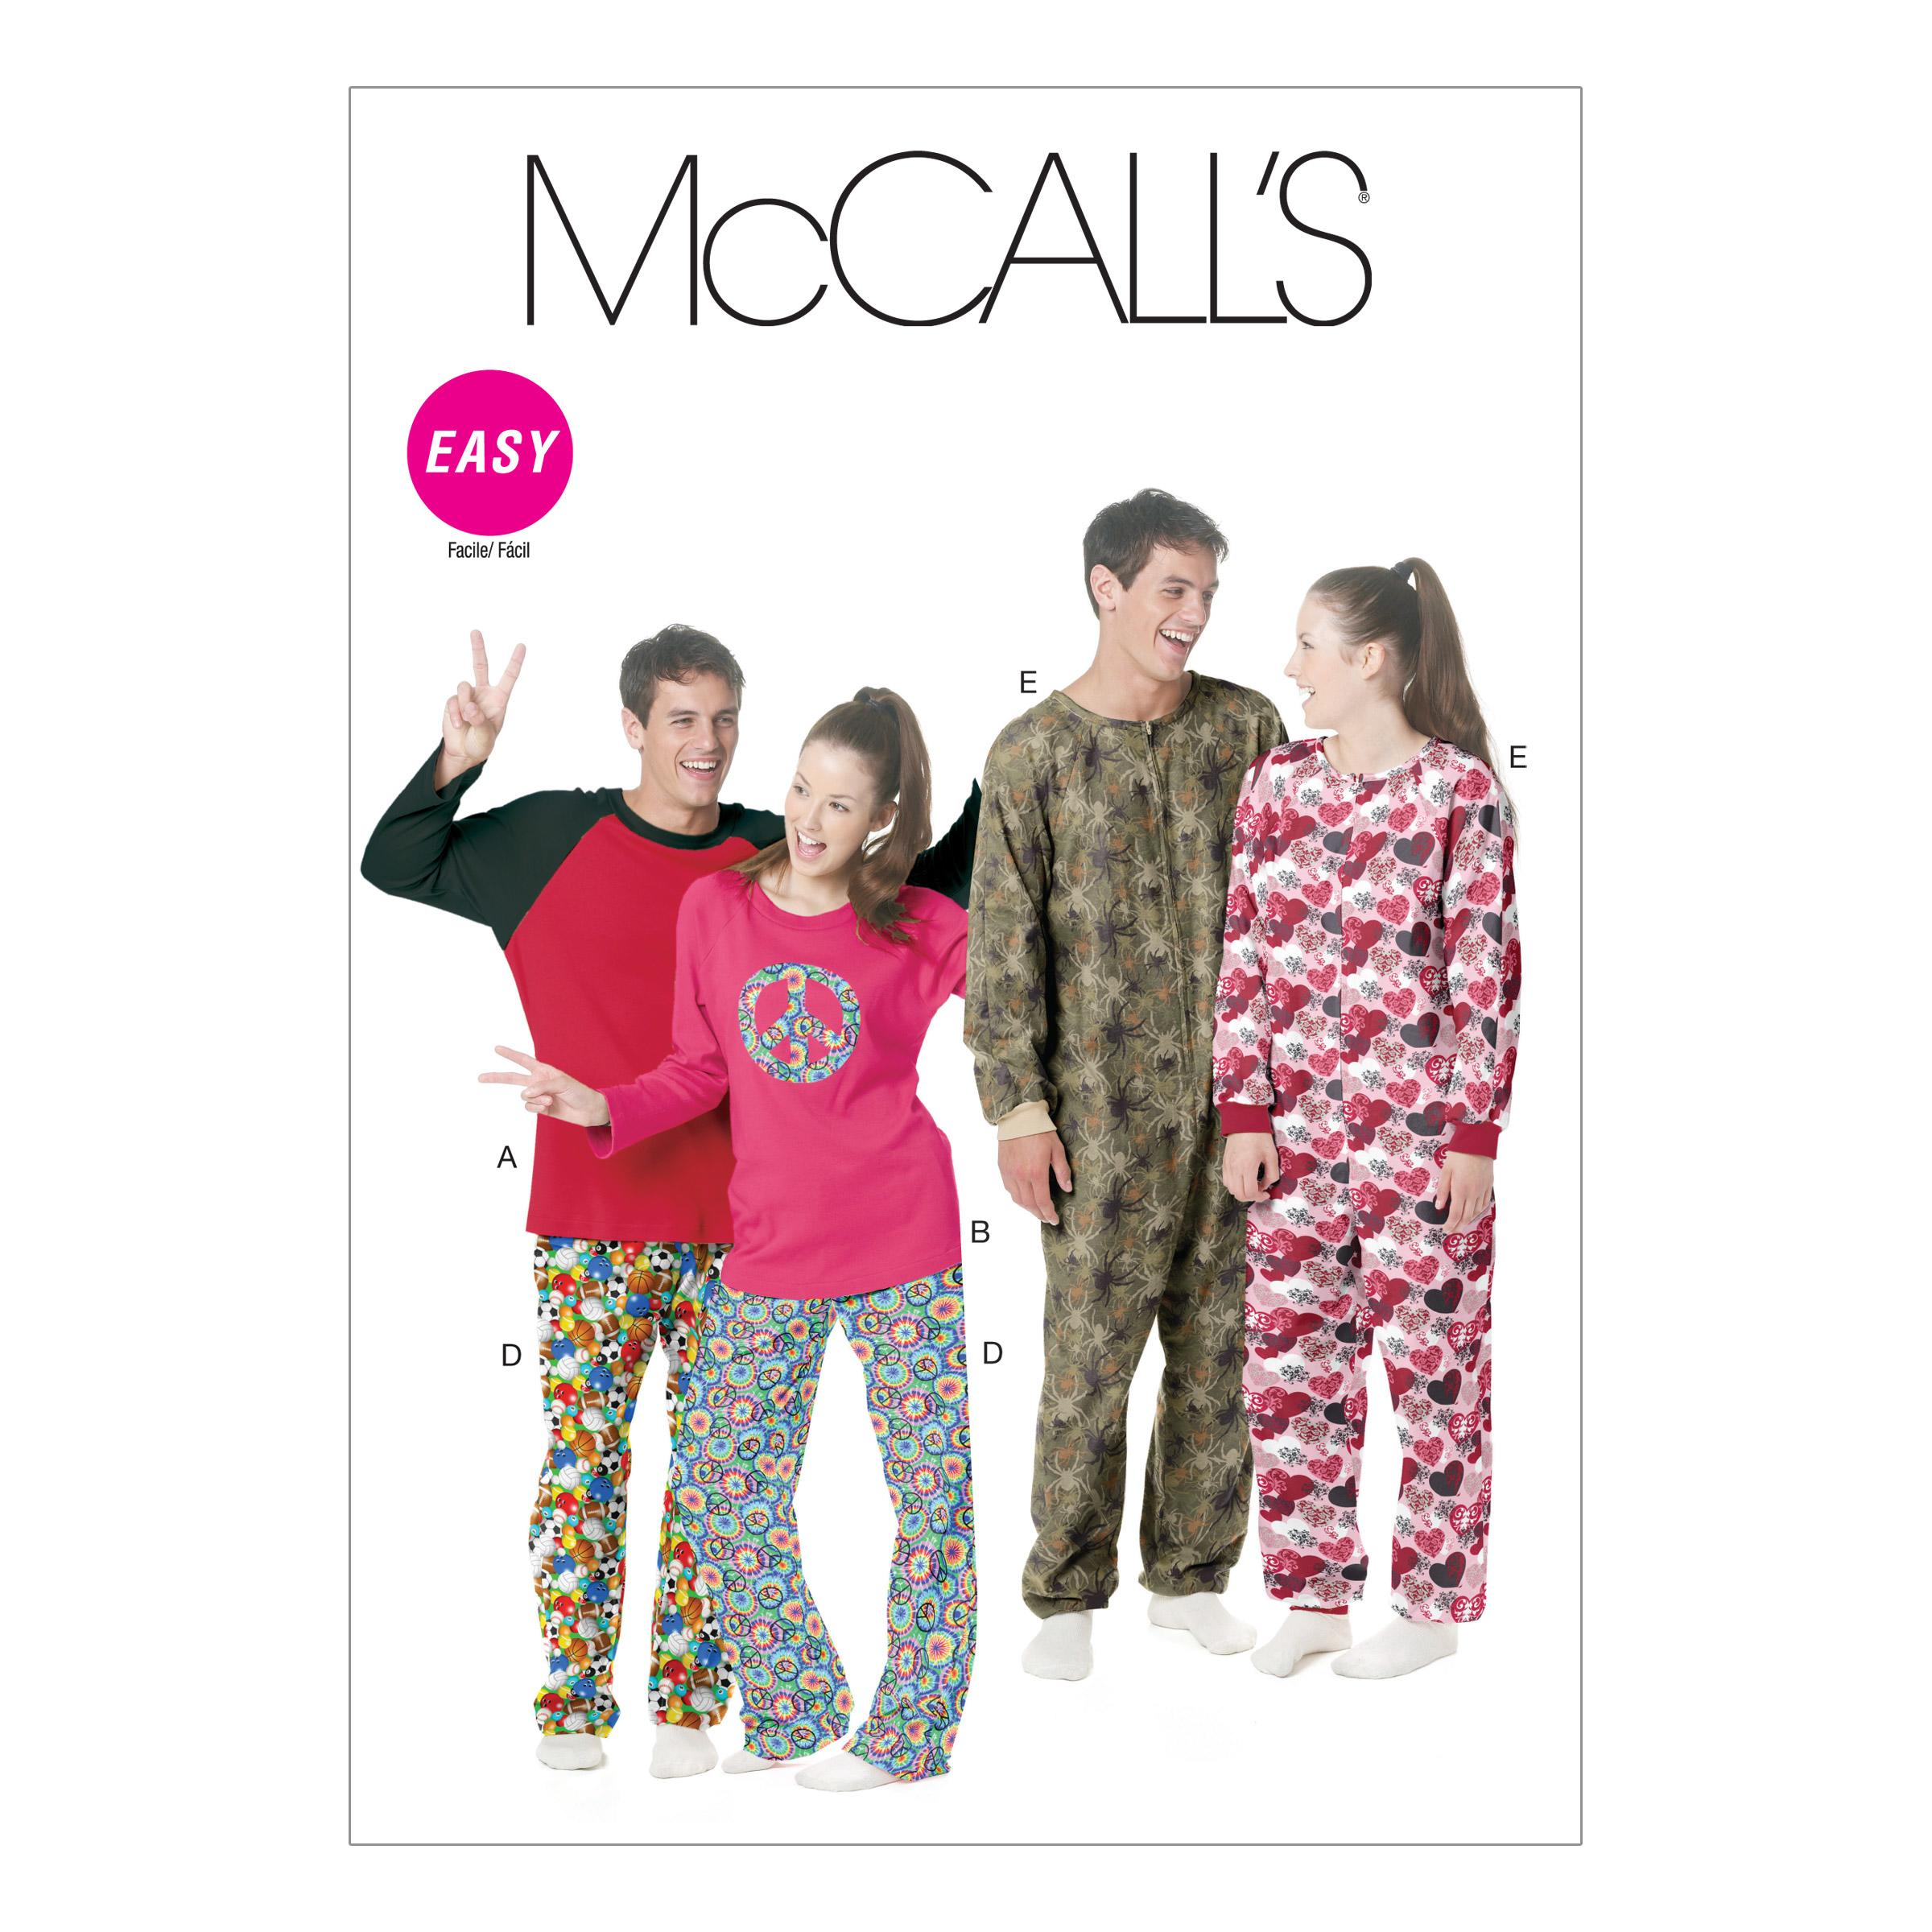 McCalls M6251 Family Sleepwear, Men, Men/Boys, Misses, Misses/Women/Girls, Sleep/Loungewear, Unisex